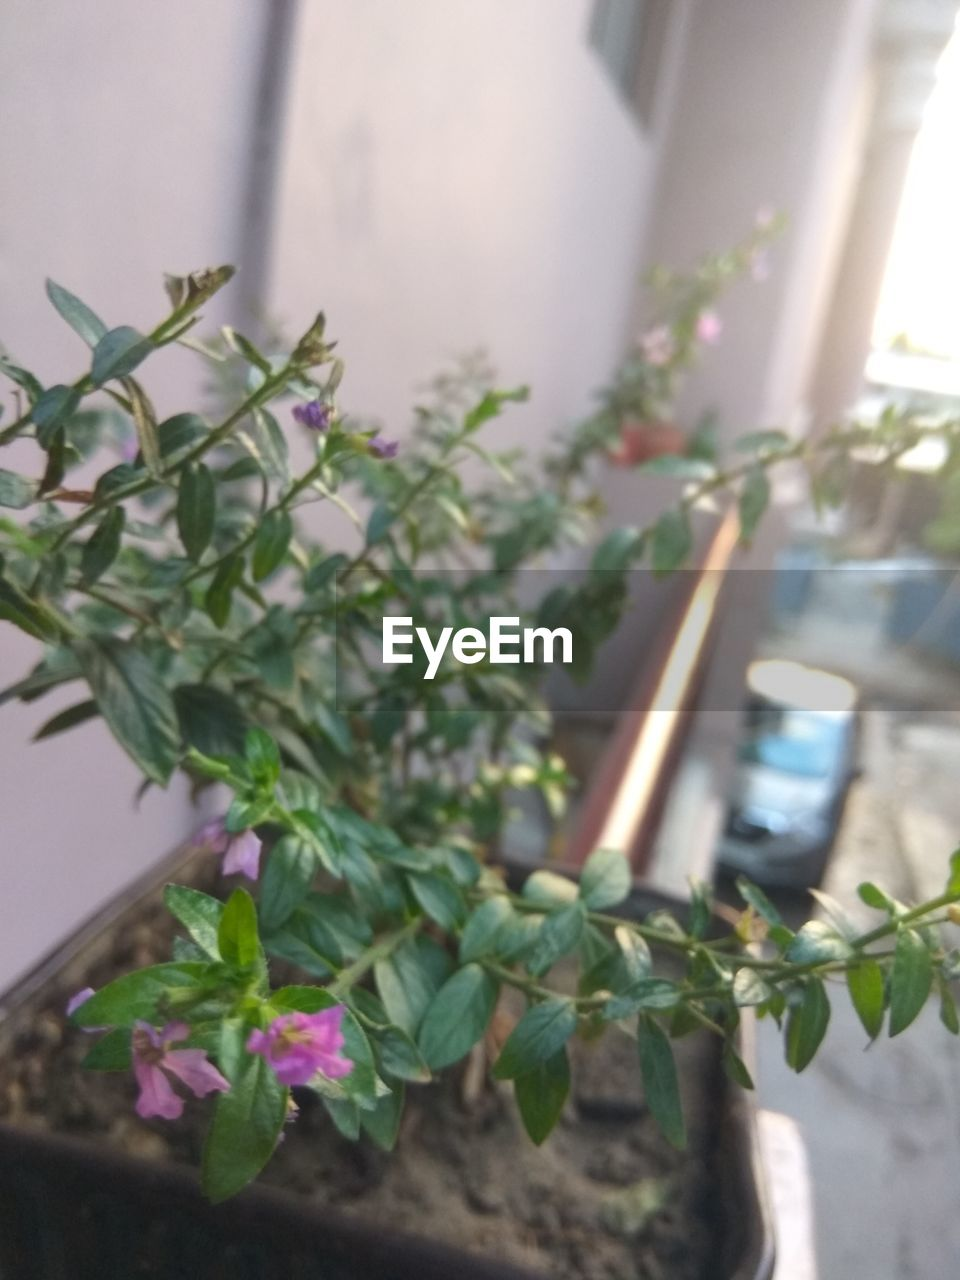 plant, growth, leaf, potted plant, no people, close-up, green color, day, nature, outdoors, flower, freshness